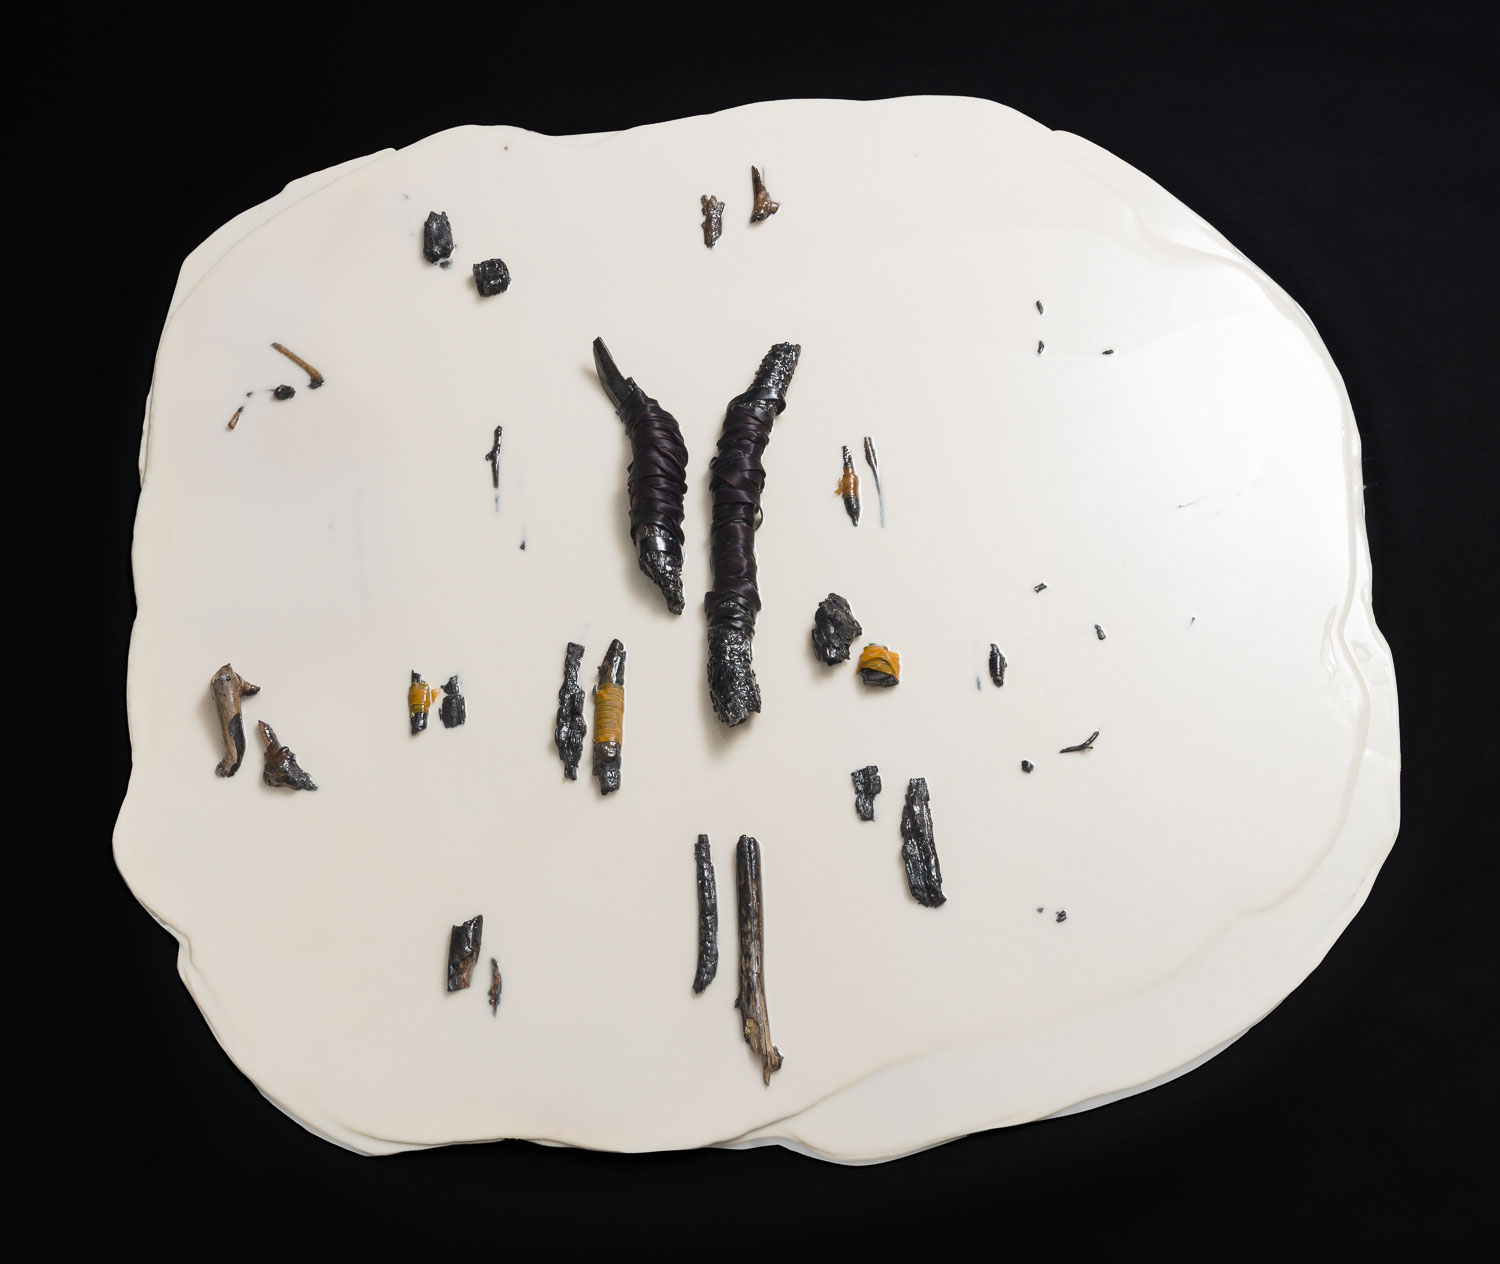 Pairs, 54 inches in diameter, breast milk, acrylic paint, charred sticks, mixed media, 2016